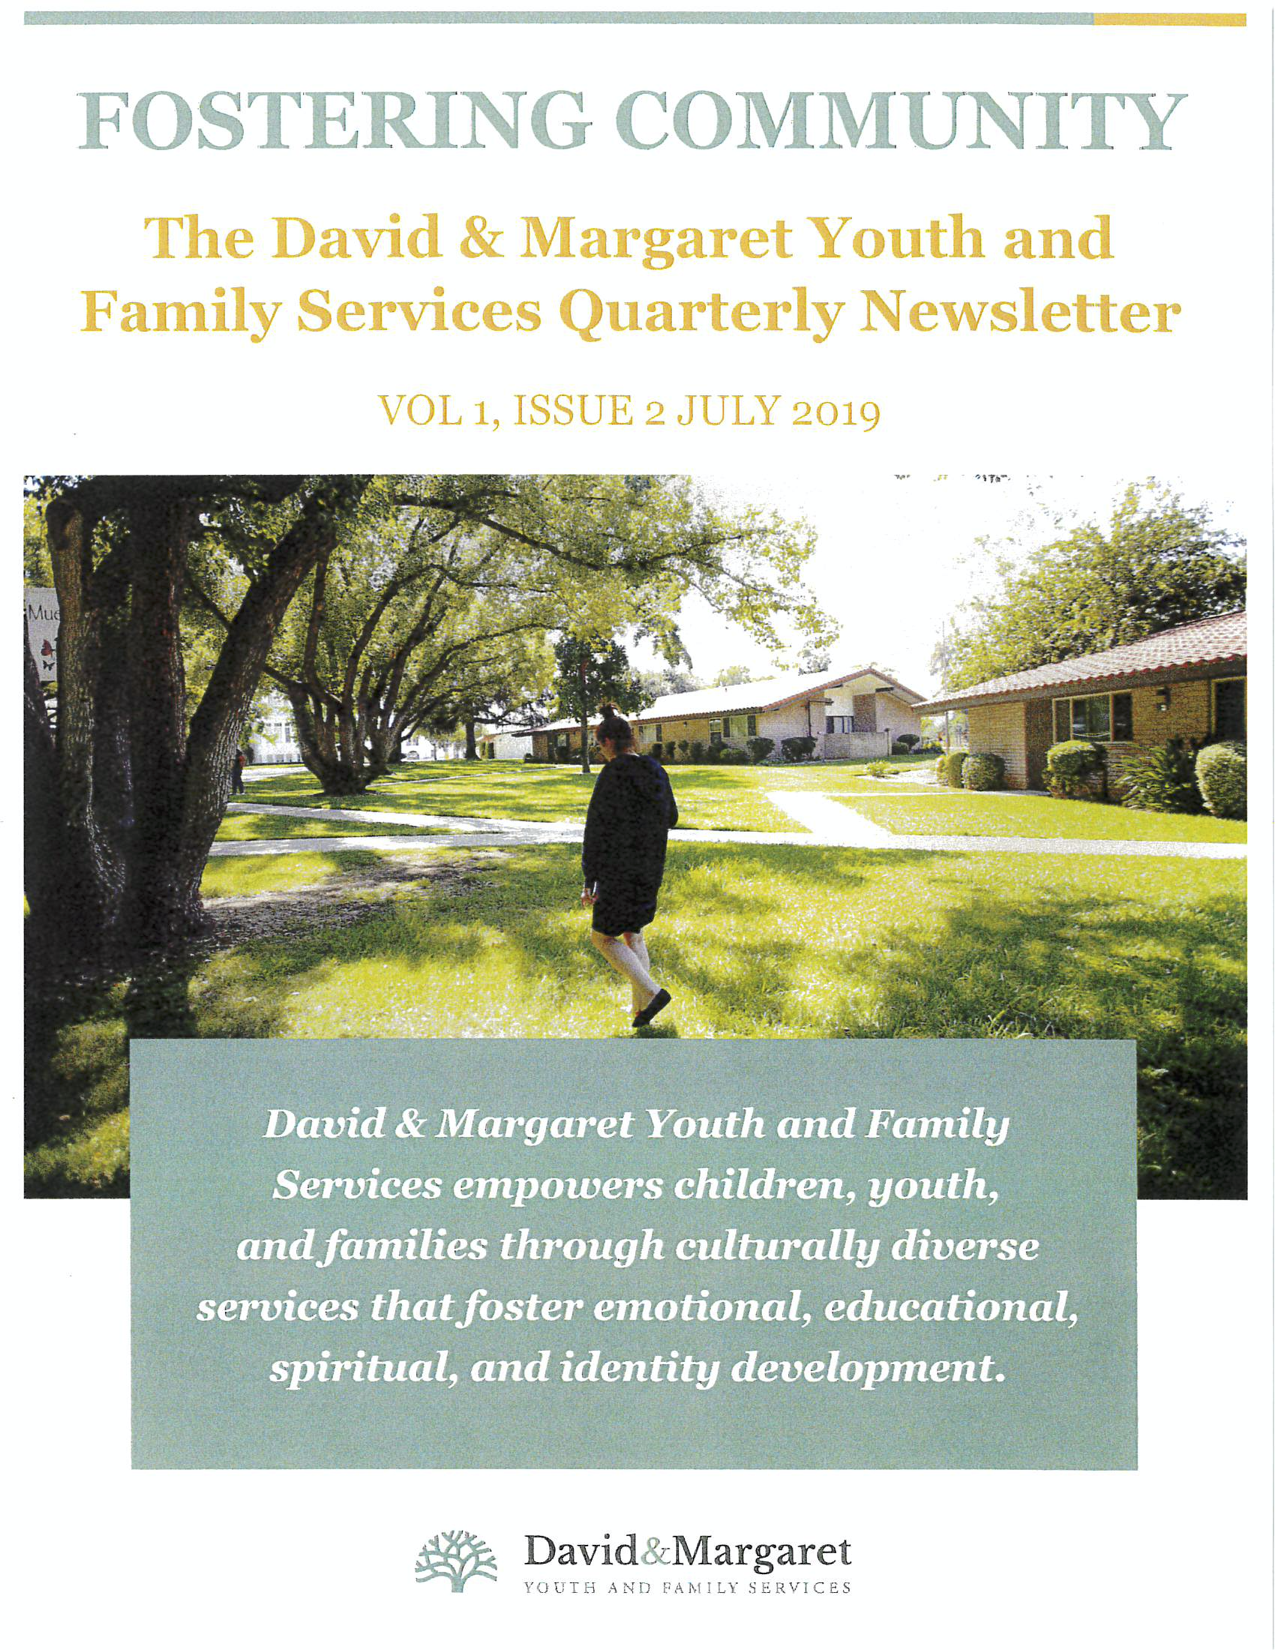 David & Margaret Quarterly Newsletter Vol. 1 Issue 2